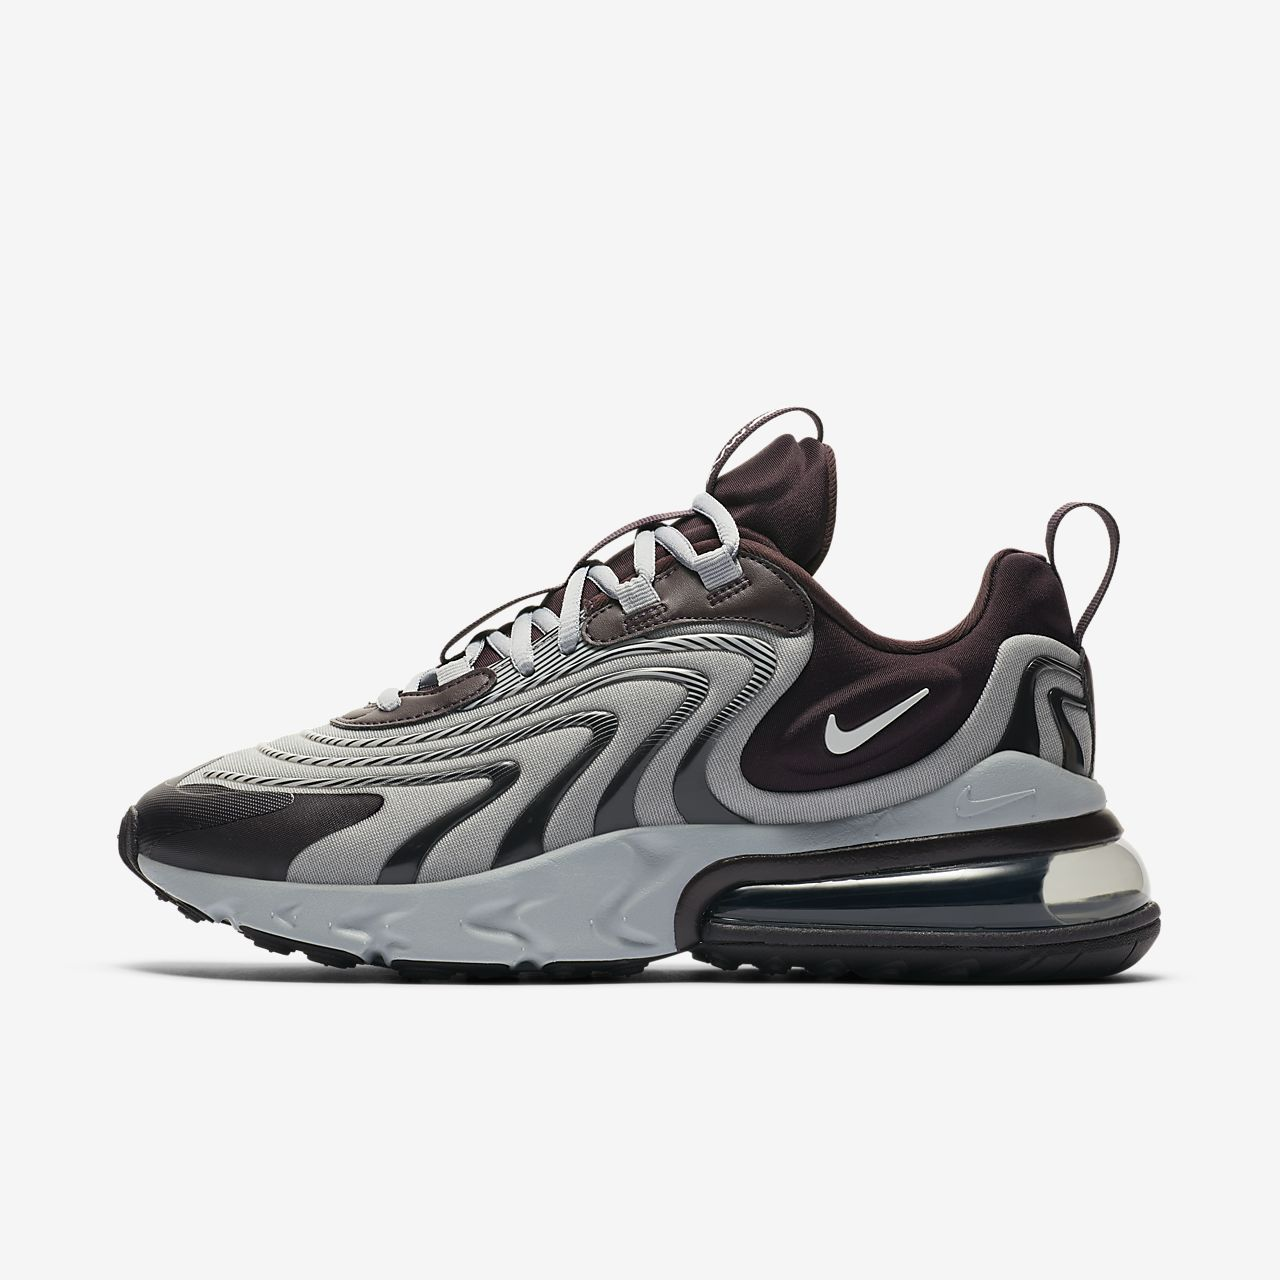 Chaussure Nike Air Max 270 React ENG pour Femme